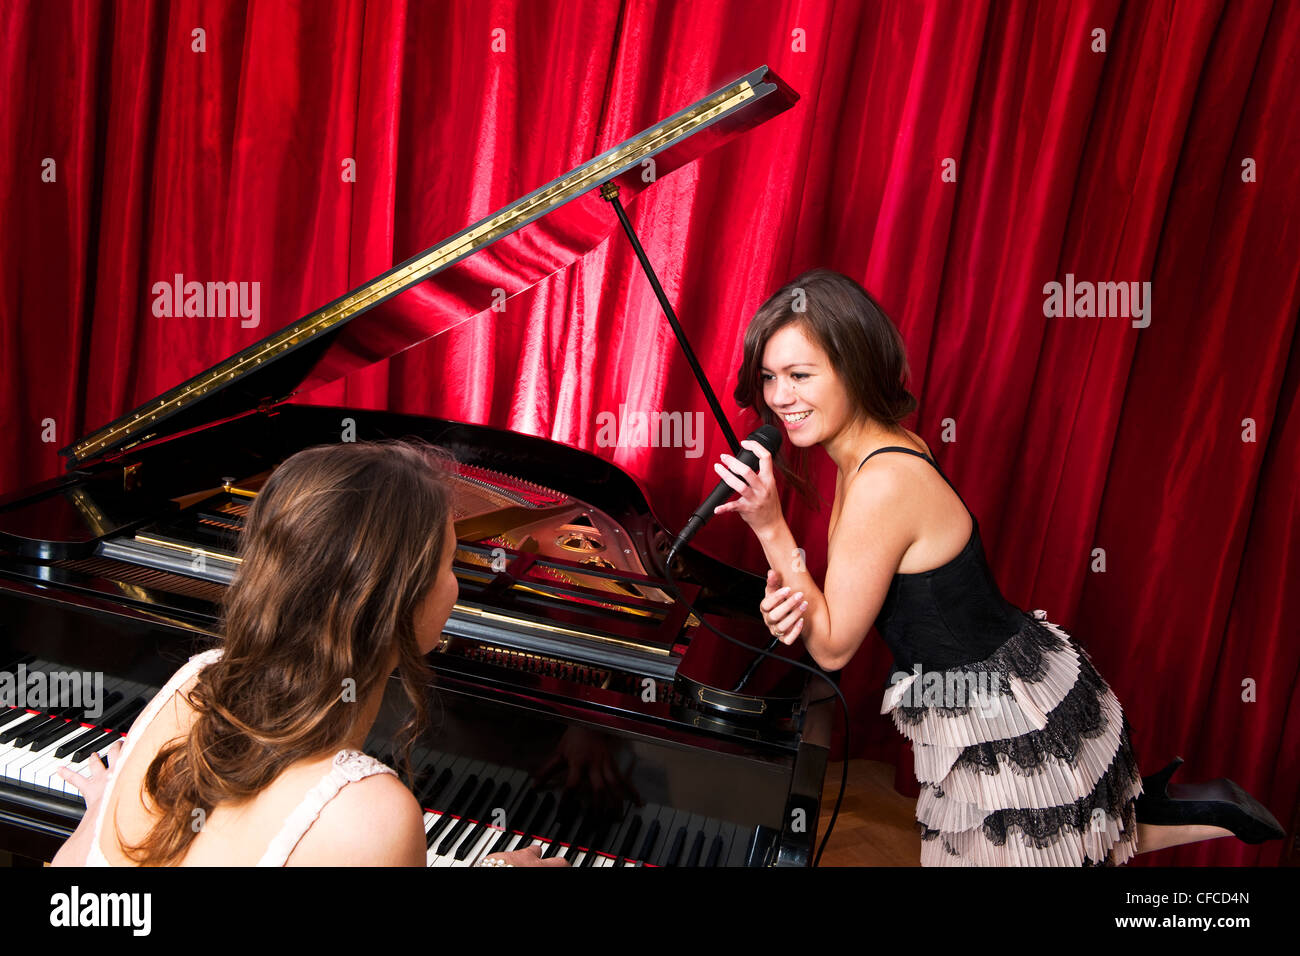 Two women singing a duet with a concert piano - Stock Image